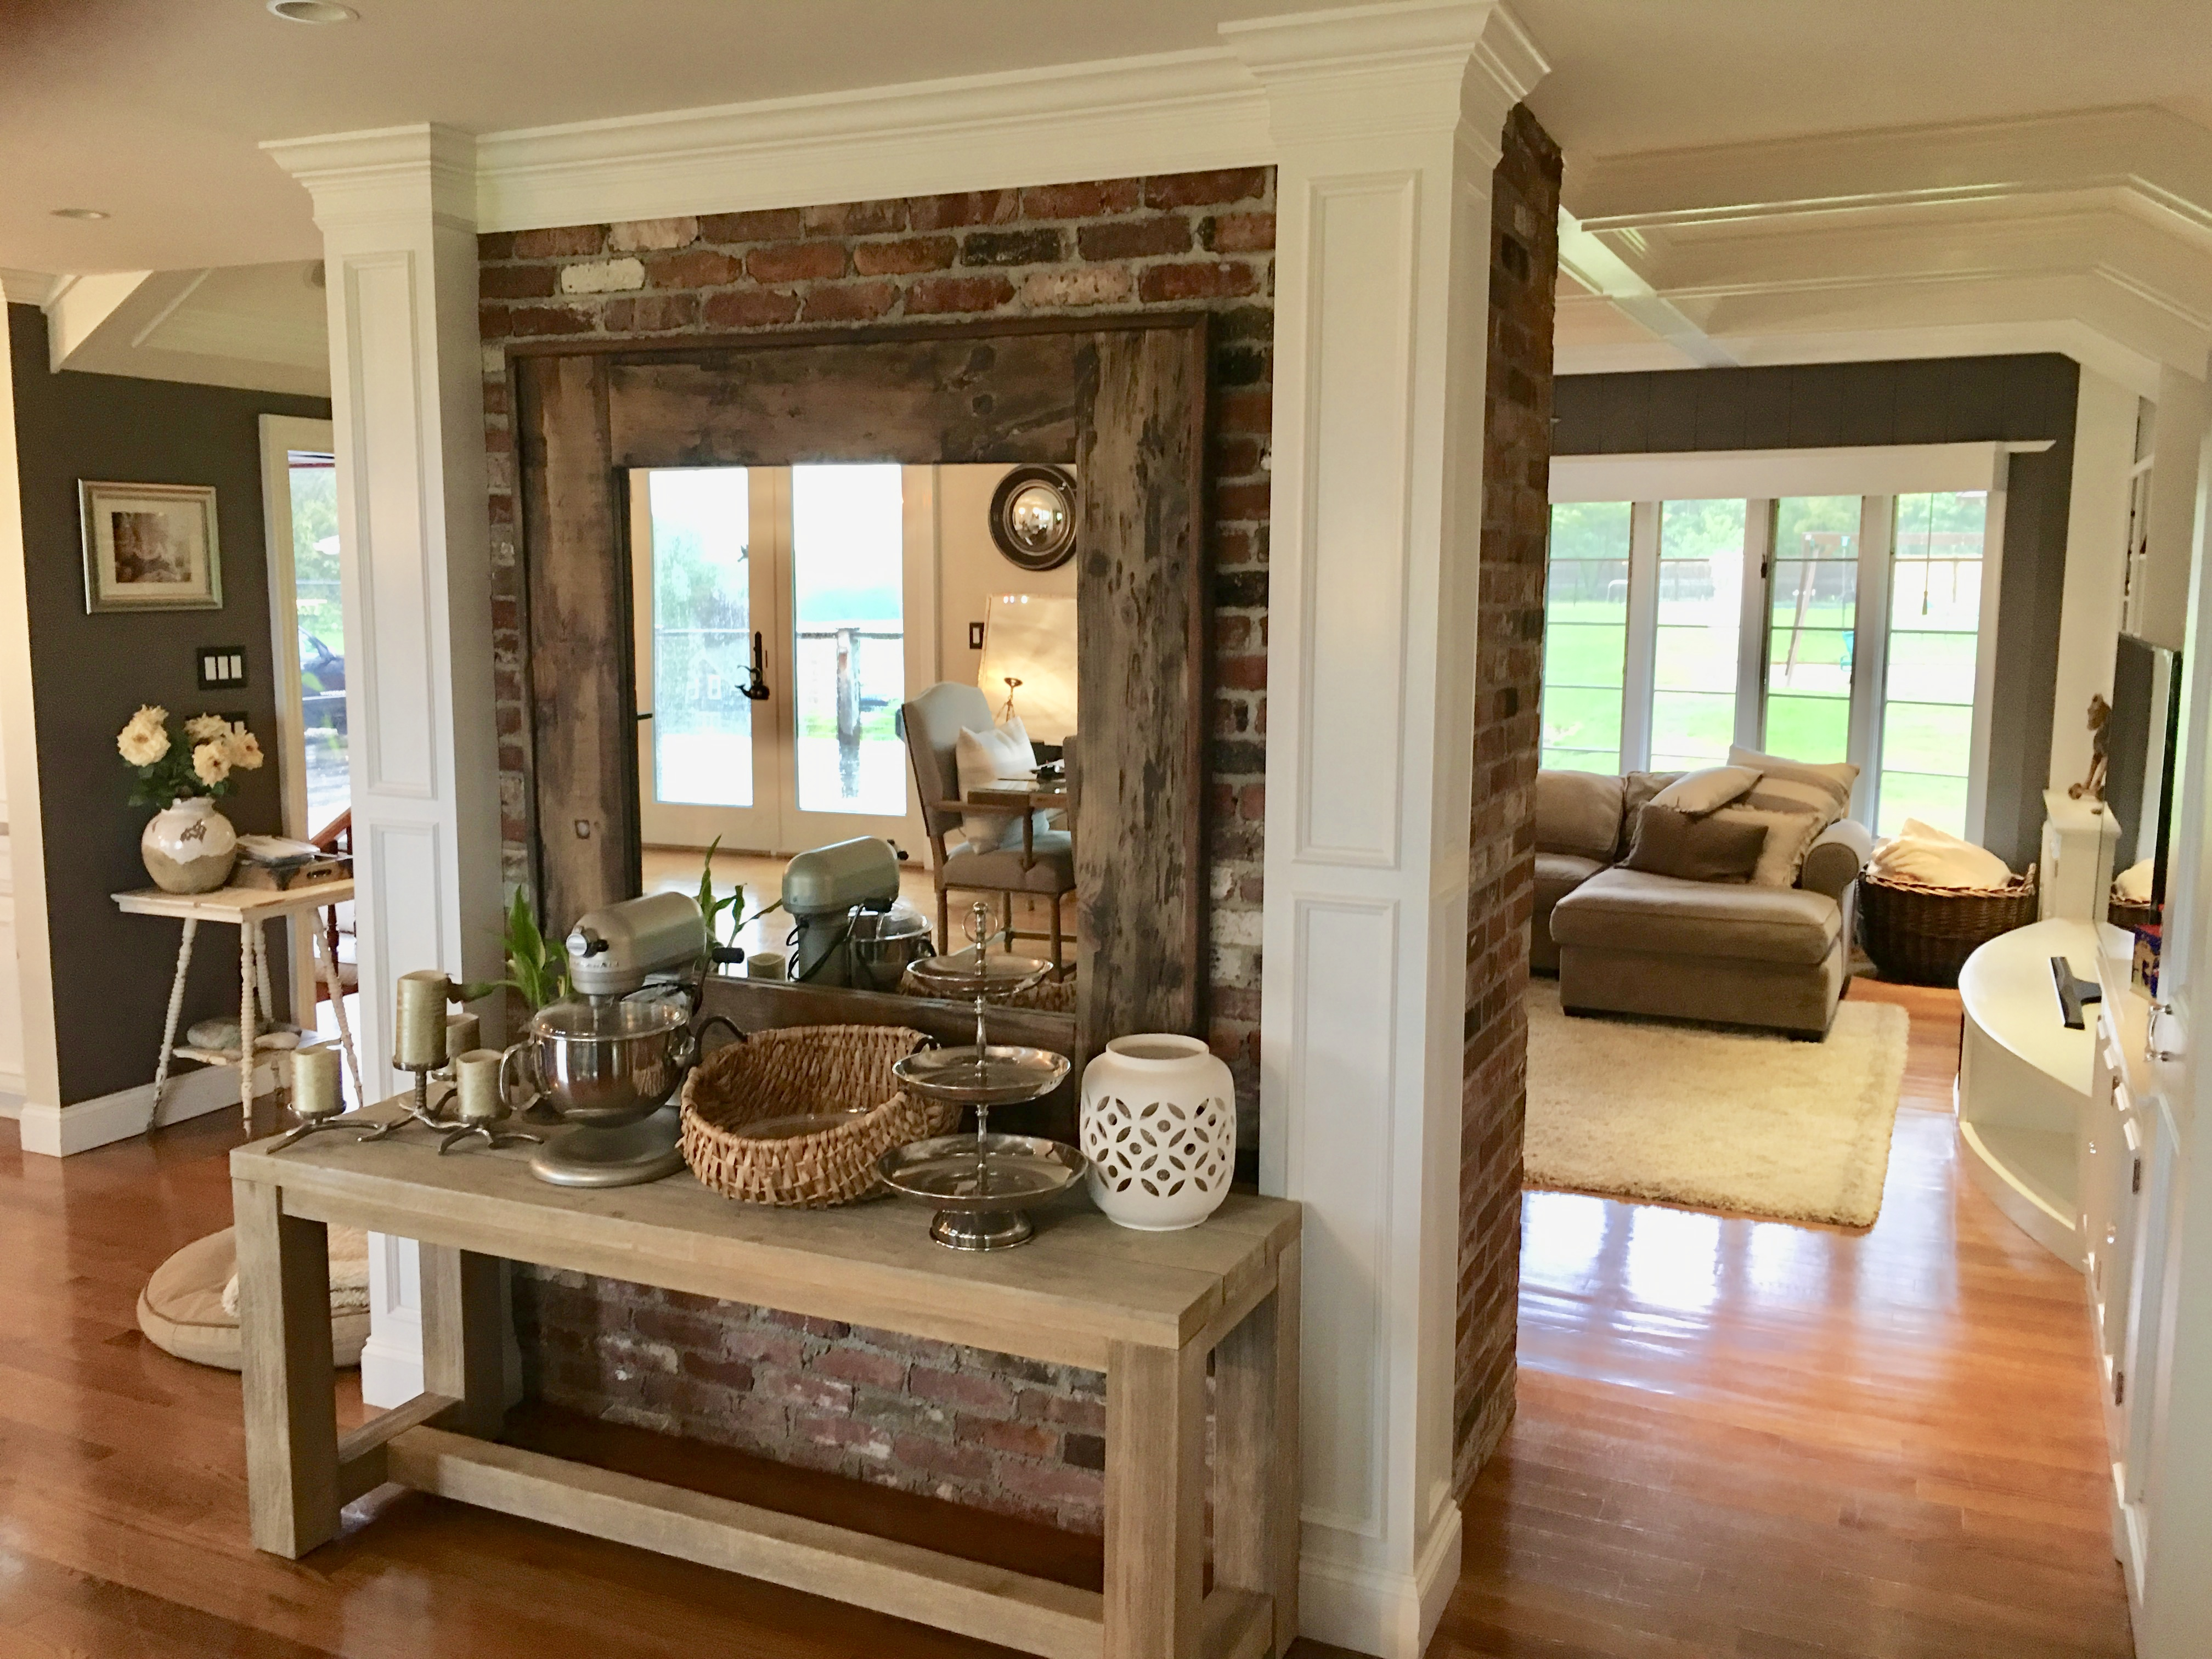 Plymouth Kelly Home Remodel